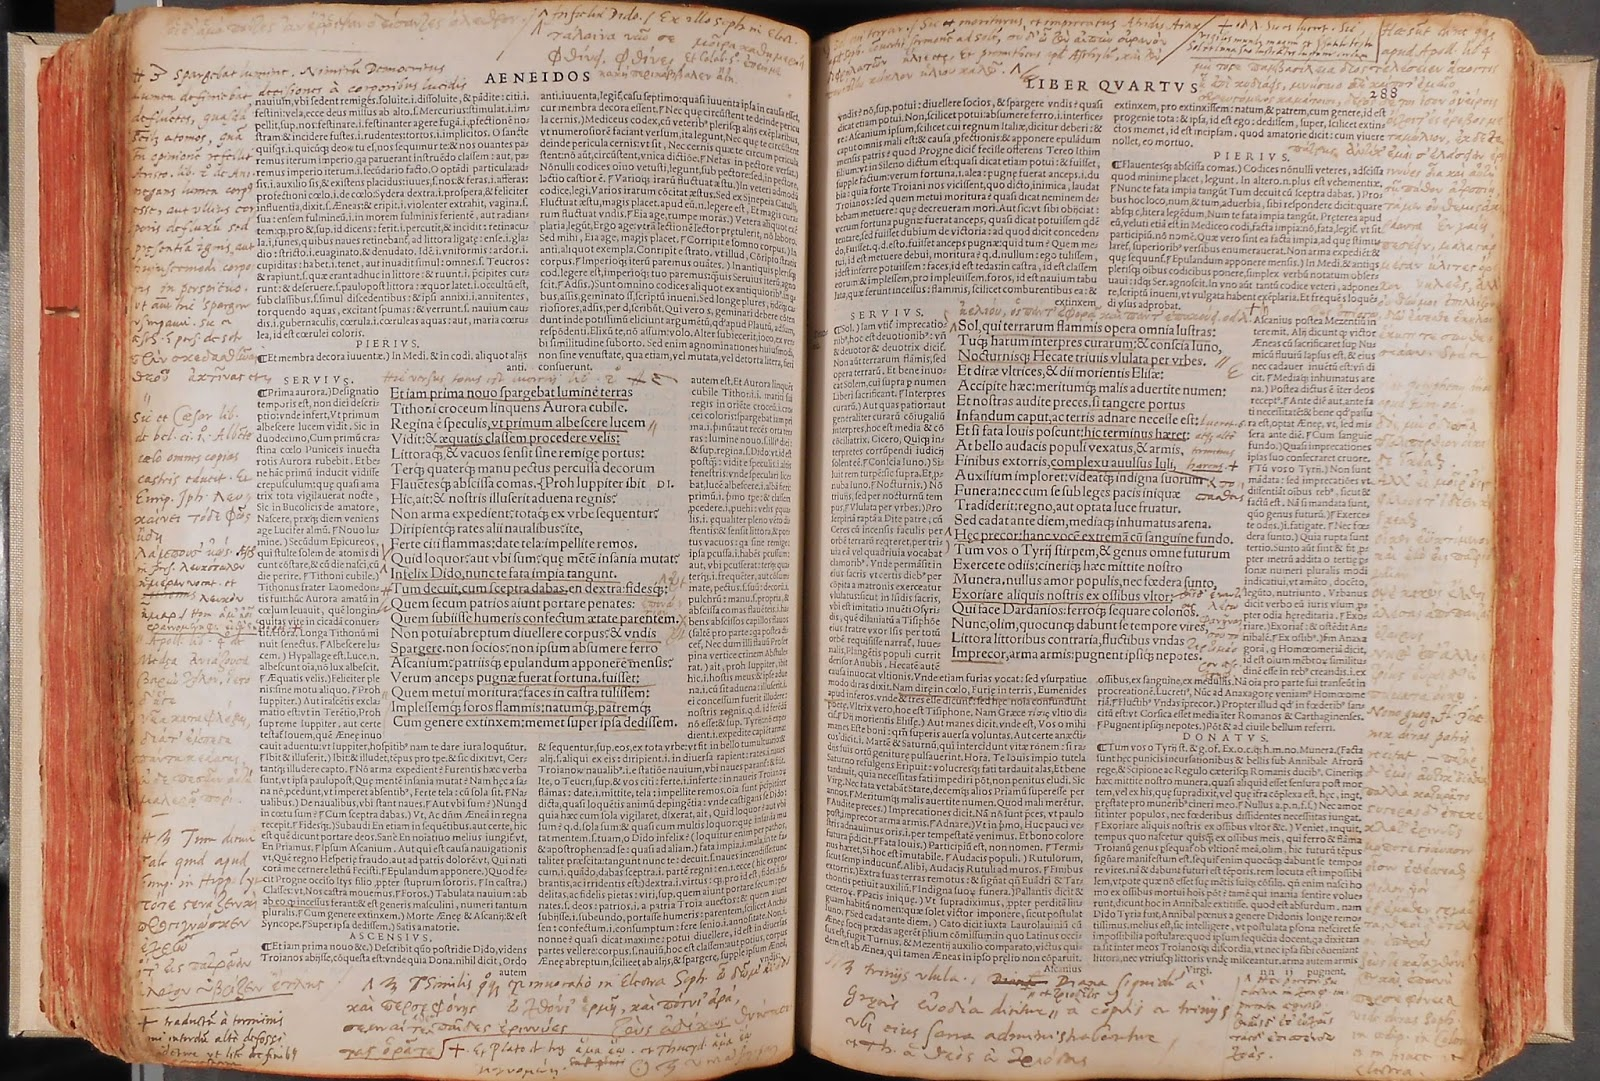 A printed book of Virgil with extensive notes in the margins.